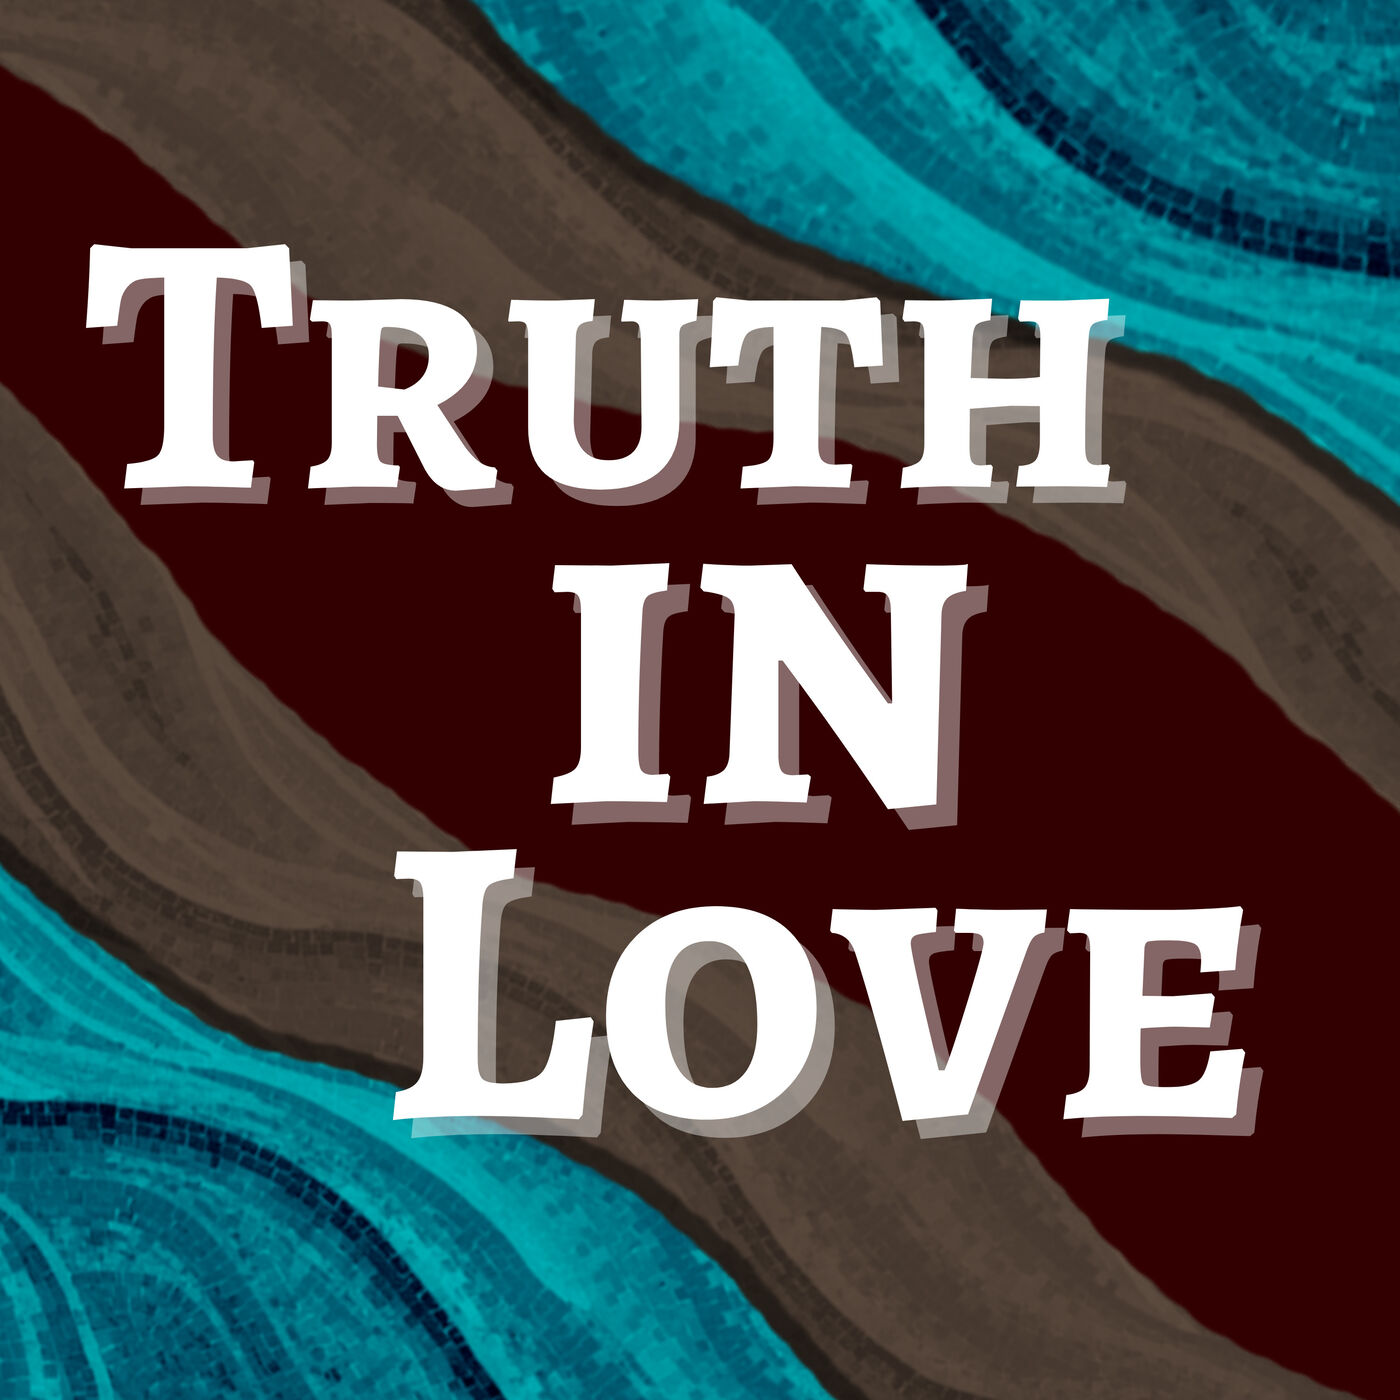 Sharing Truth in Love: Encouragement and a Plea to Christians